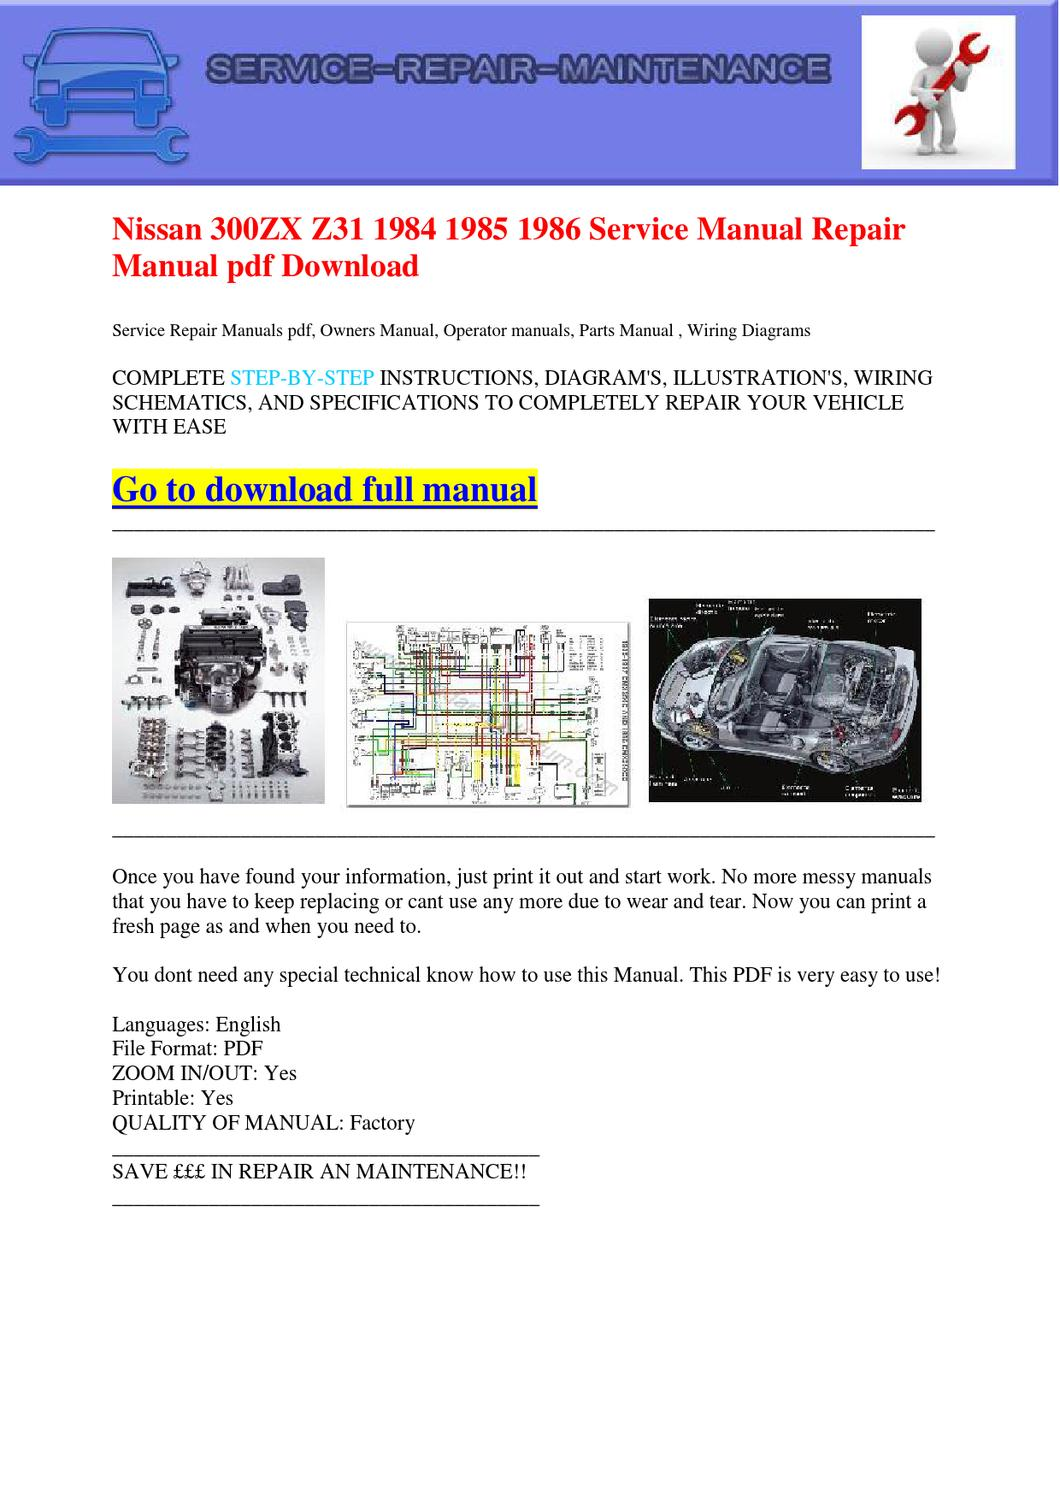 hight resolution of nissan 300zx z31 1984 1985 1986 service manual repair manual pdf download by dernis castan